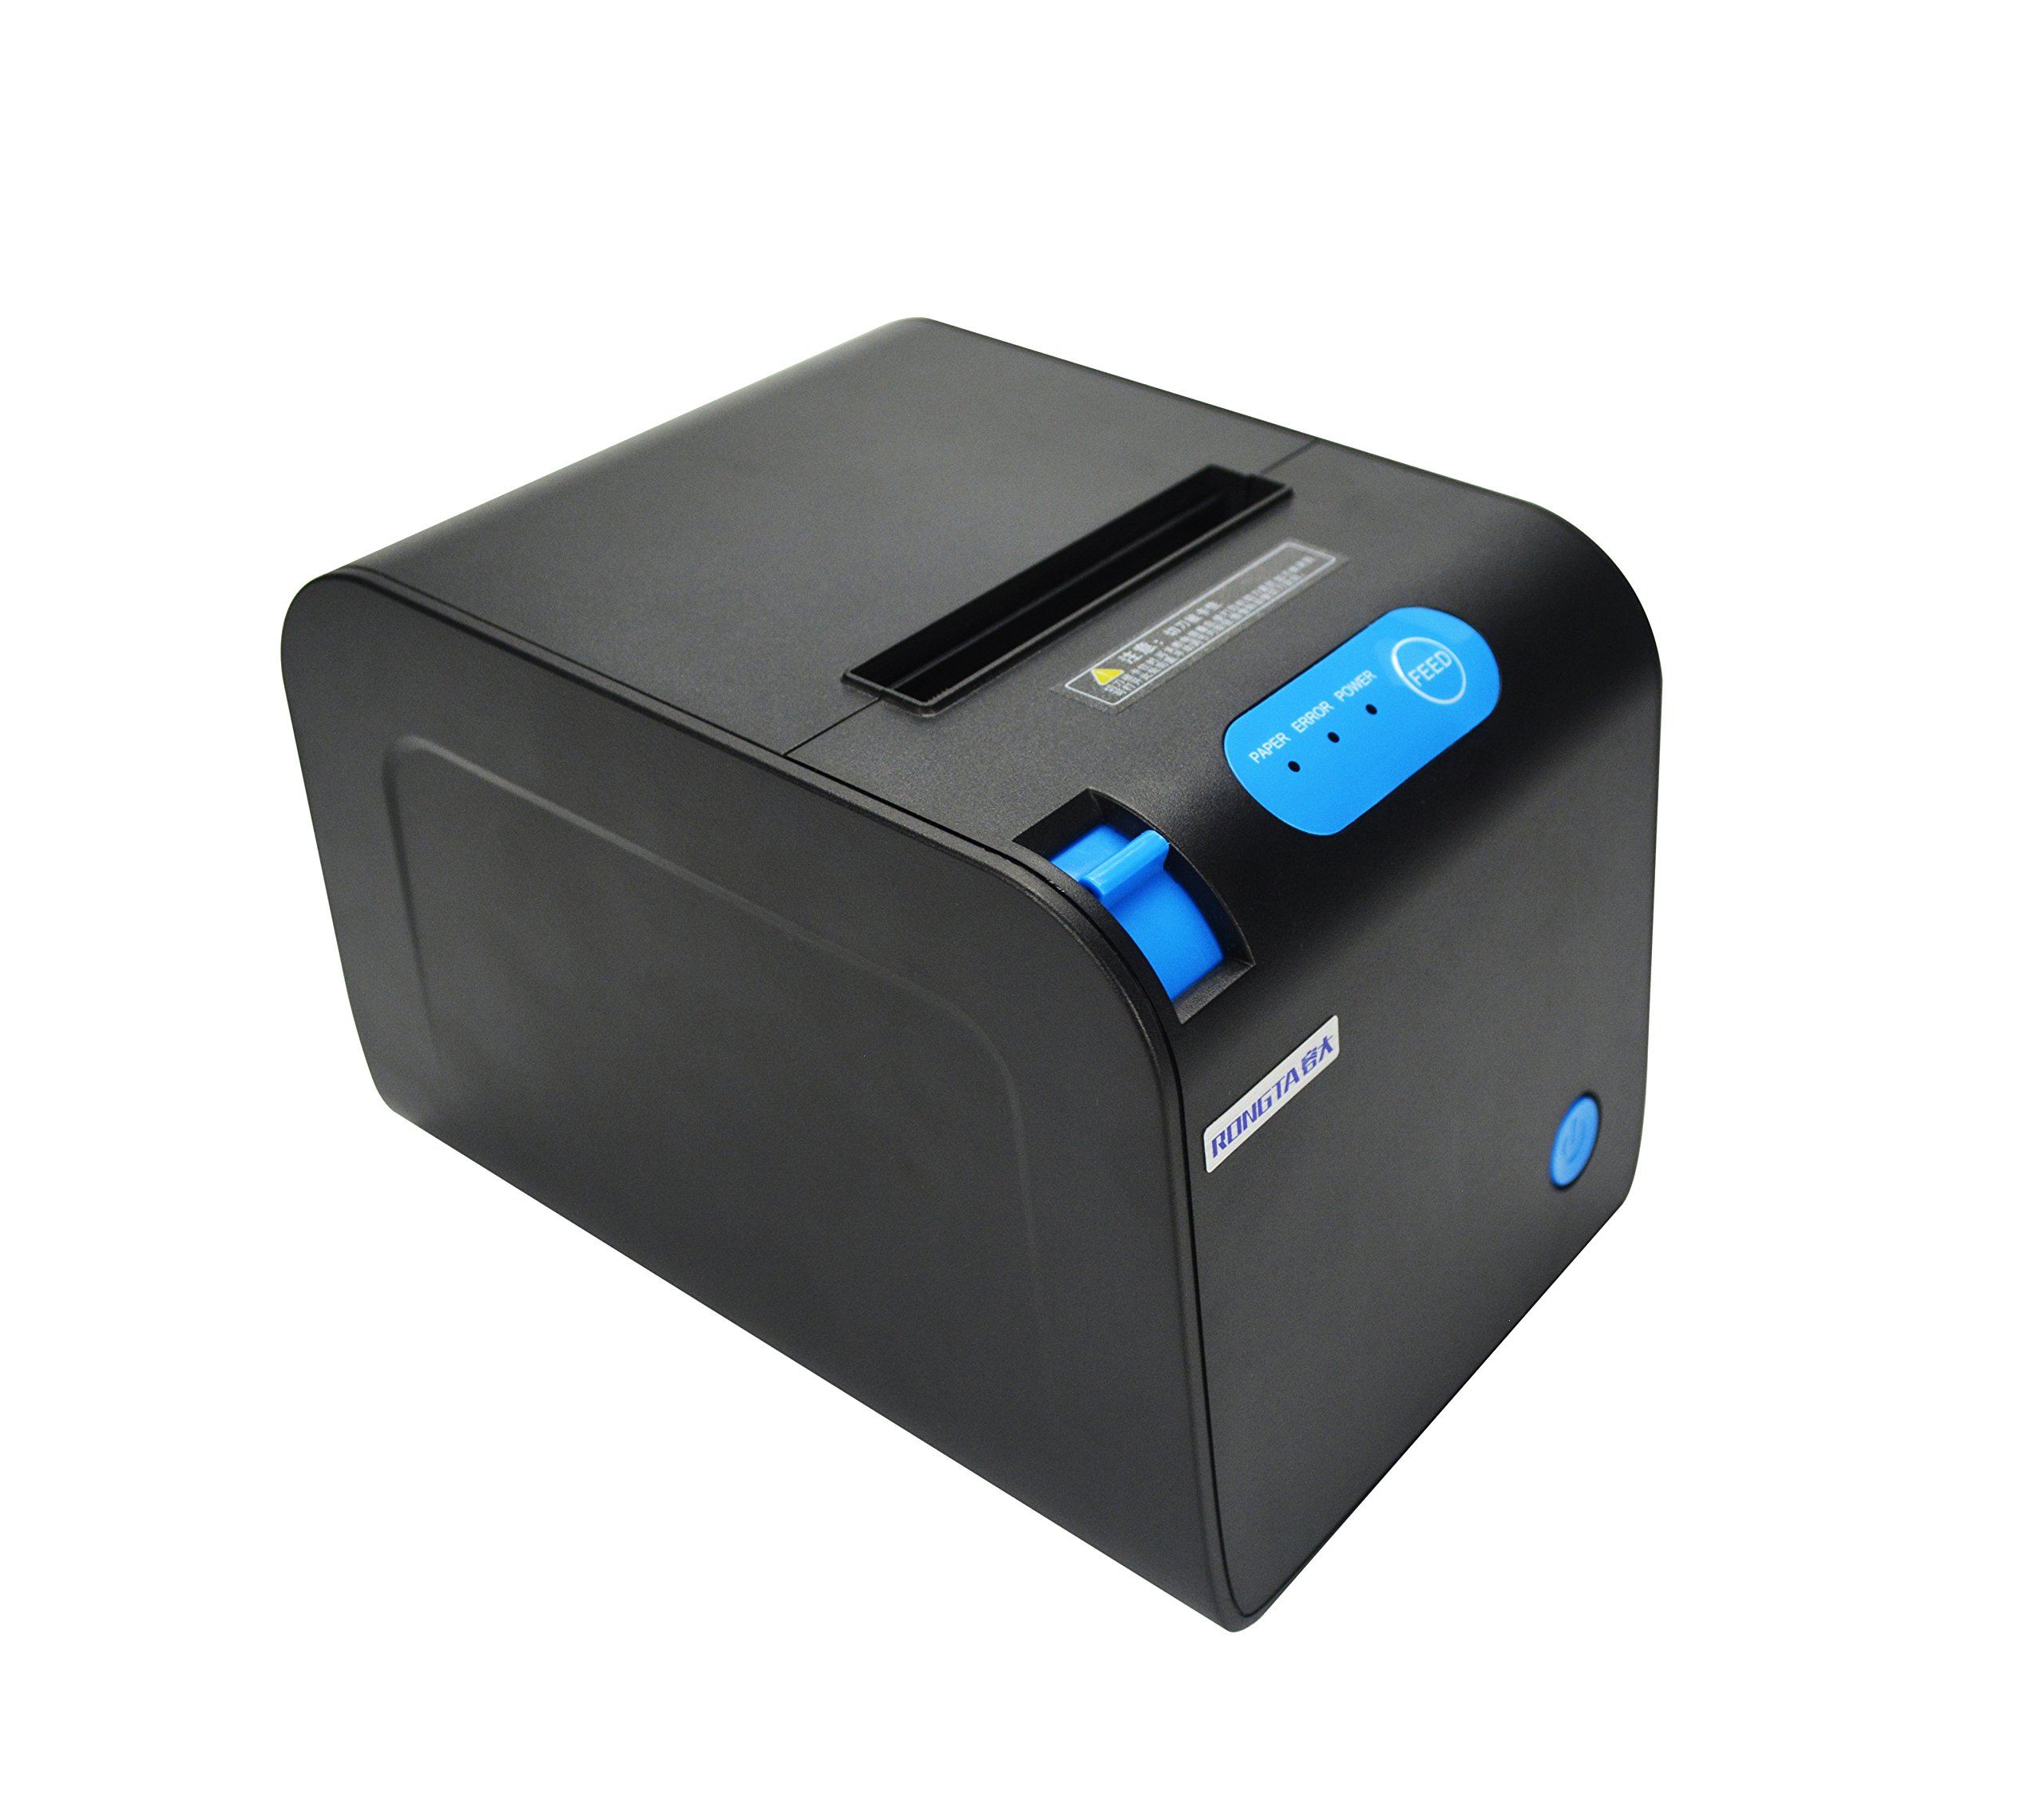 RONGTA RP328U ECO-Friendly Pos Printer, USB (cable incl.), Auto Cutter, Internal Power Supply with Power Cable Incl.